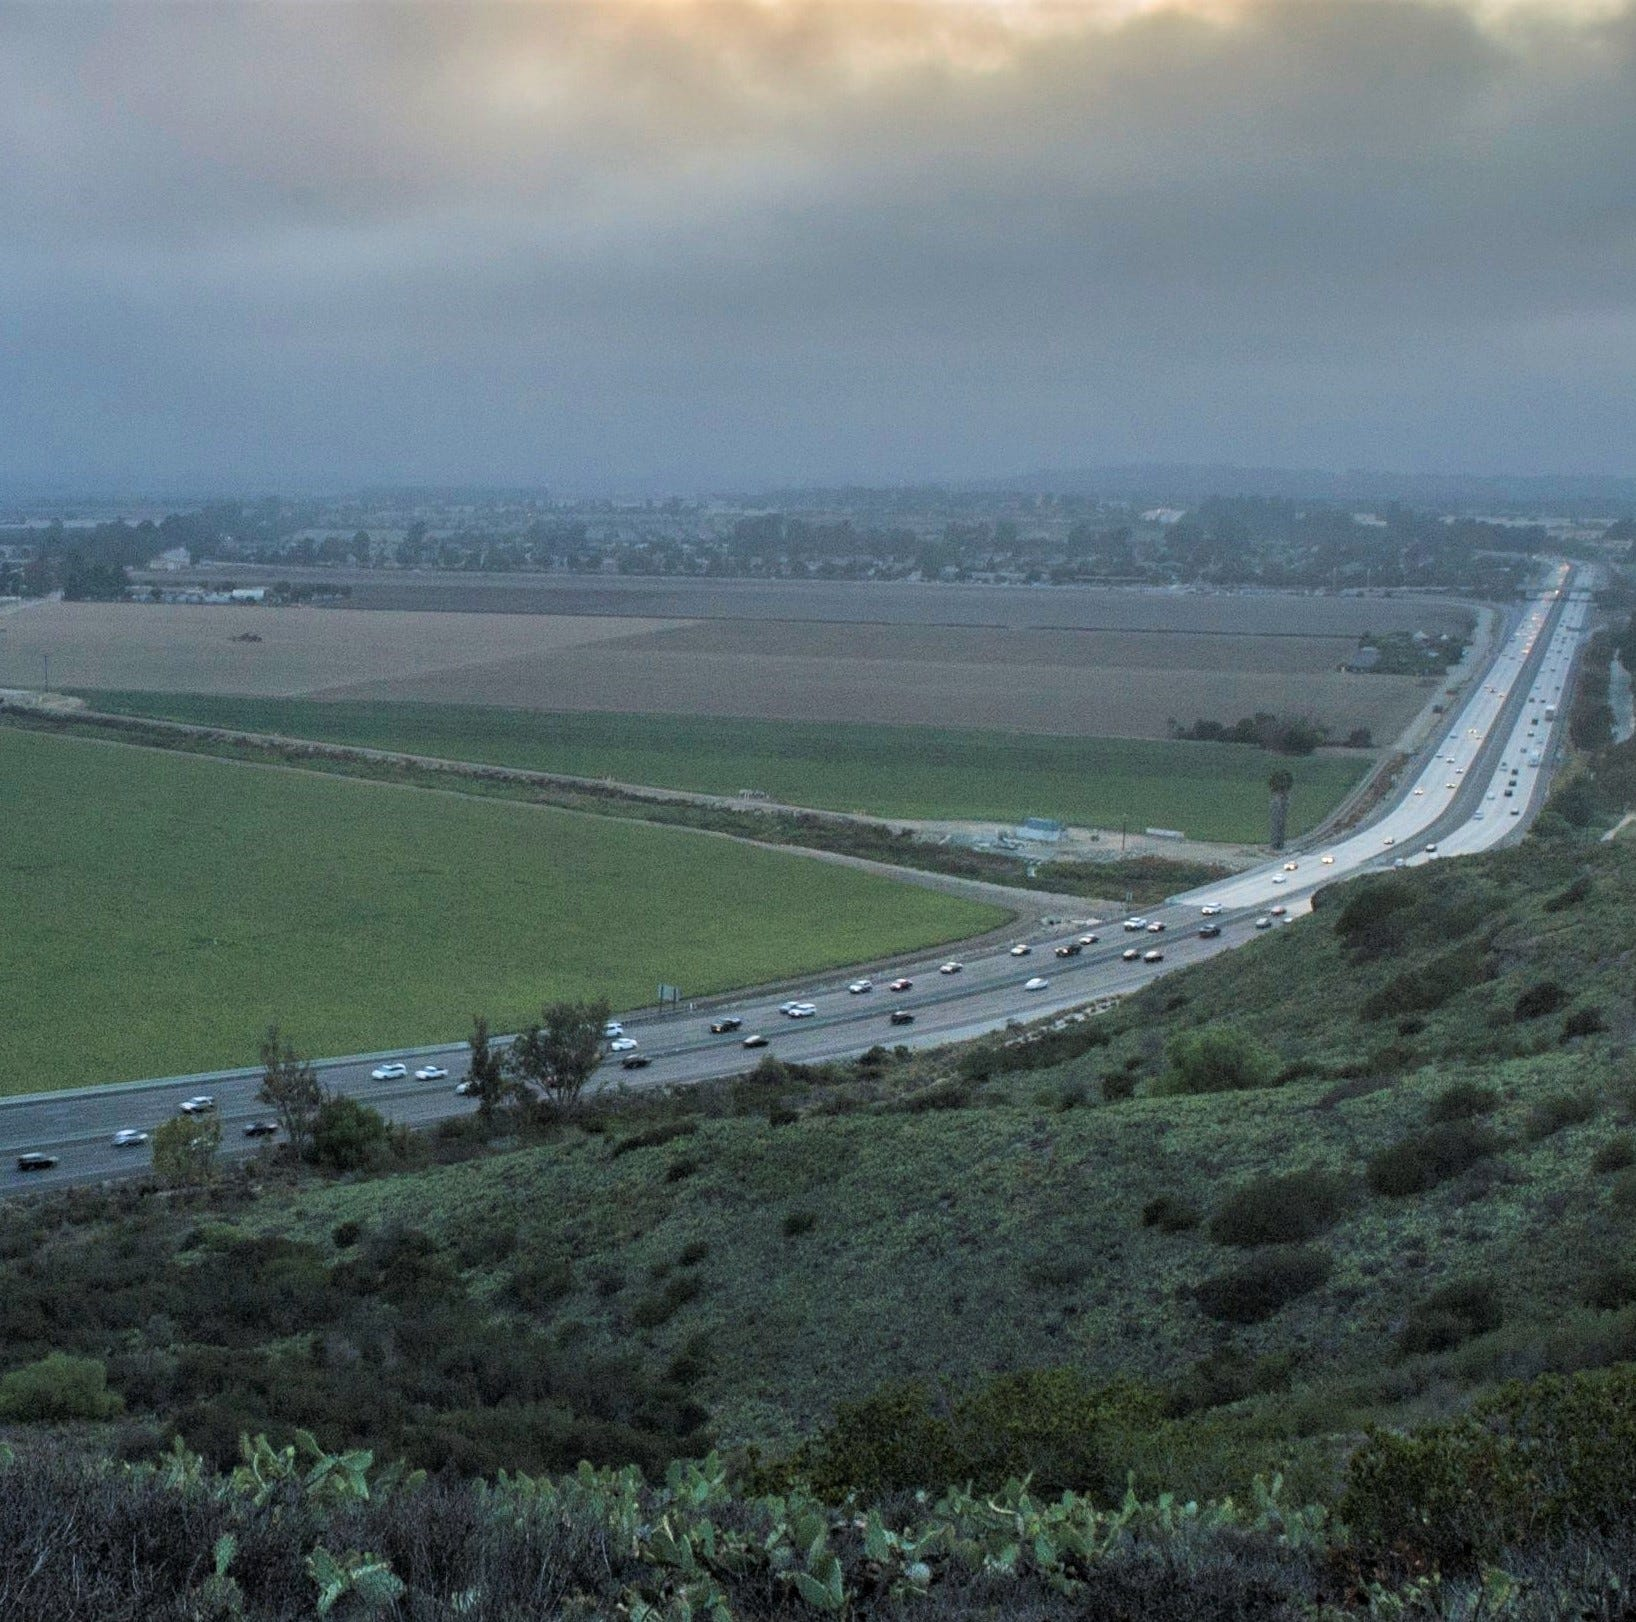 Ventura County averaged four years of nonexistent economic growth